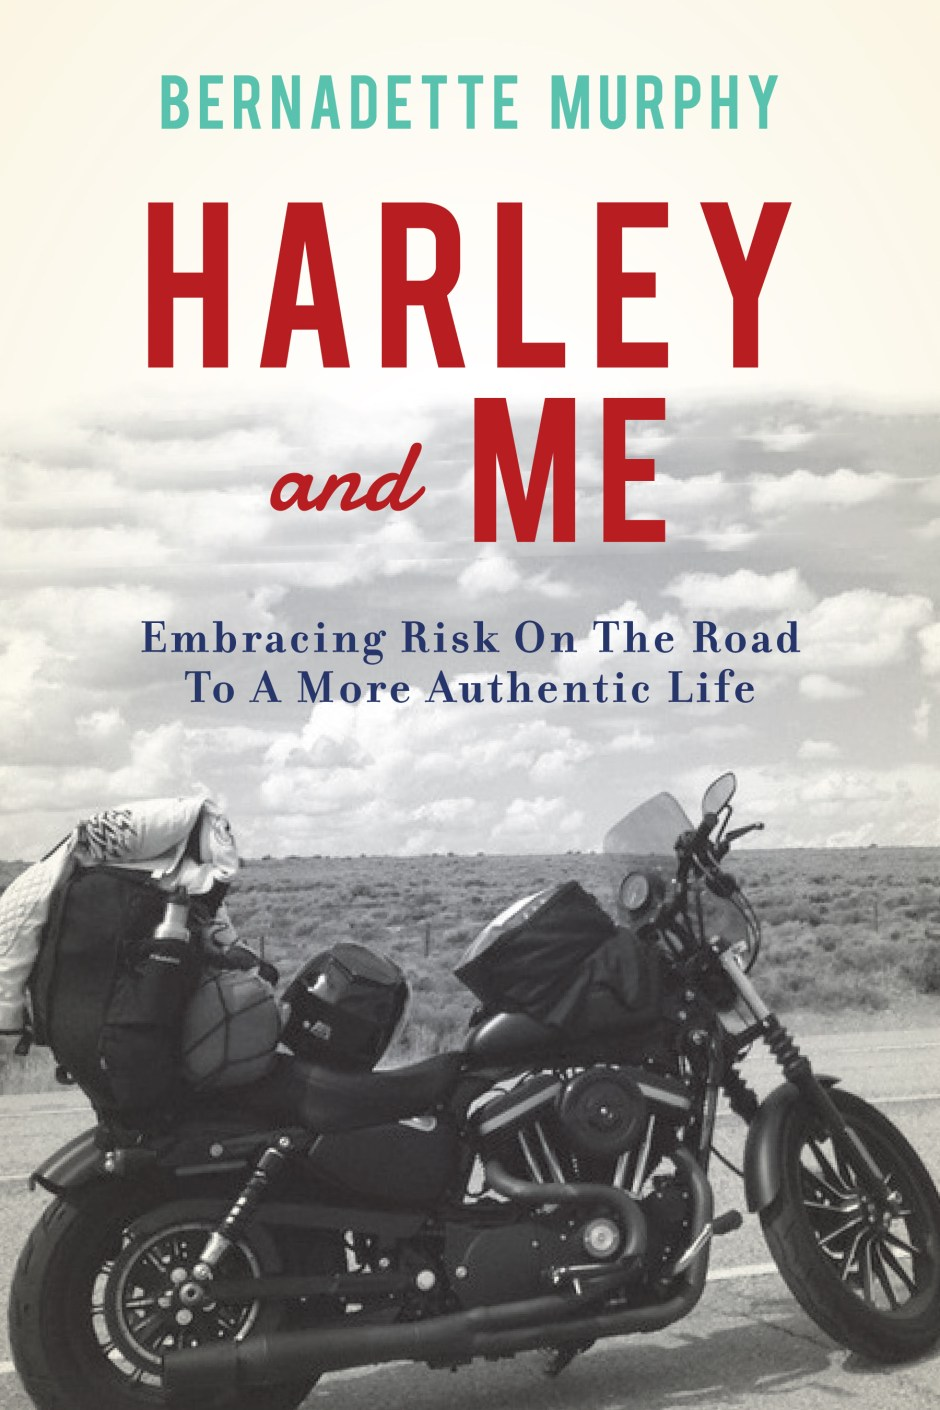 harley-and-me-front-cover-v3.indd